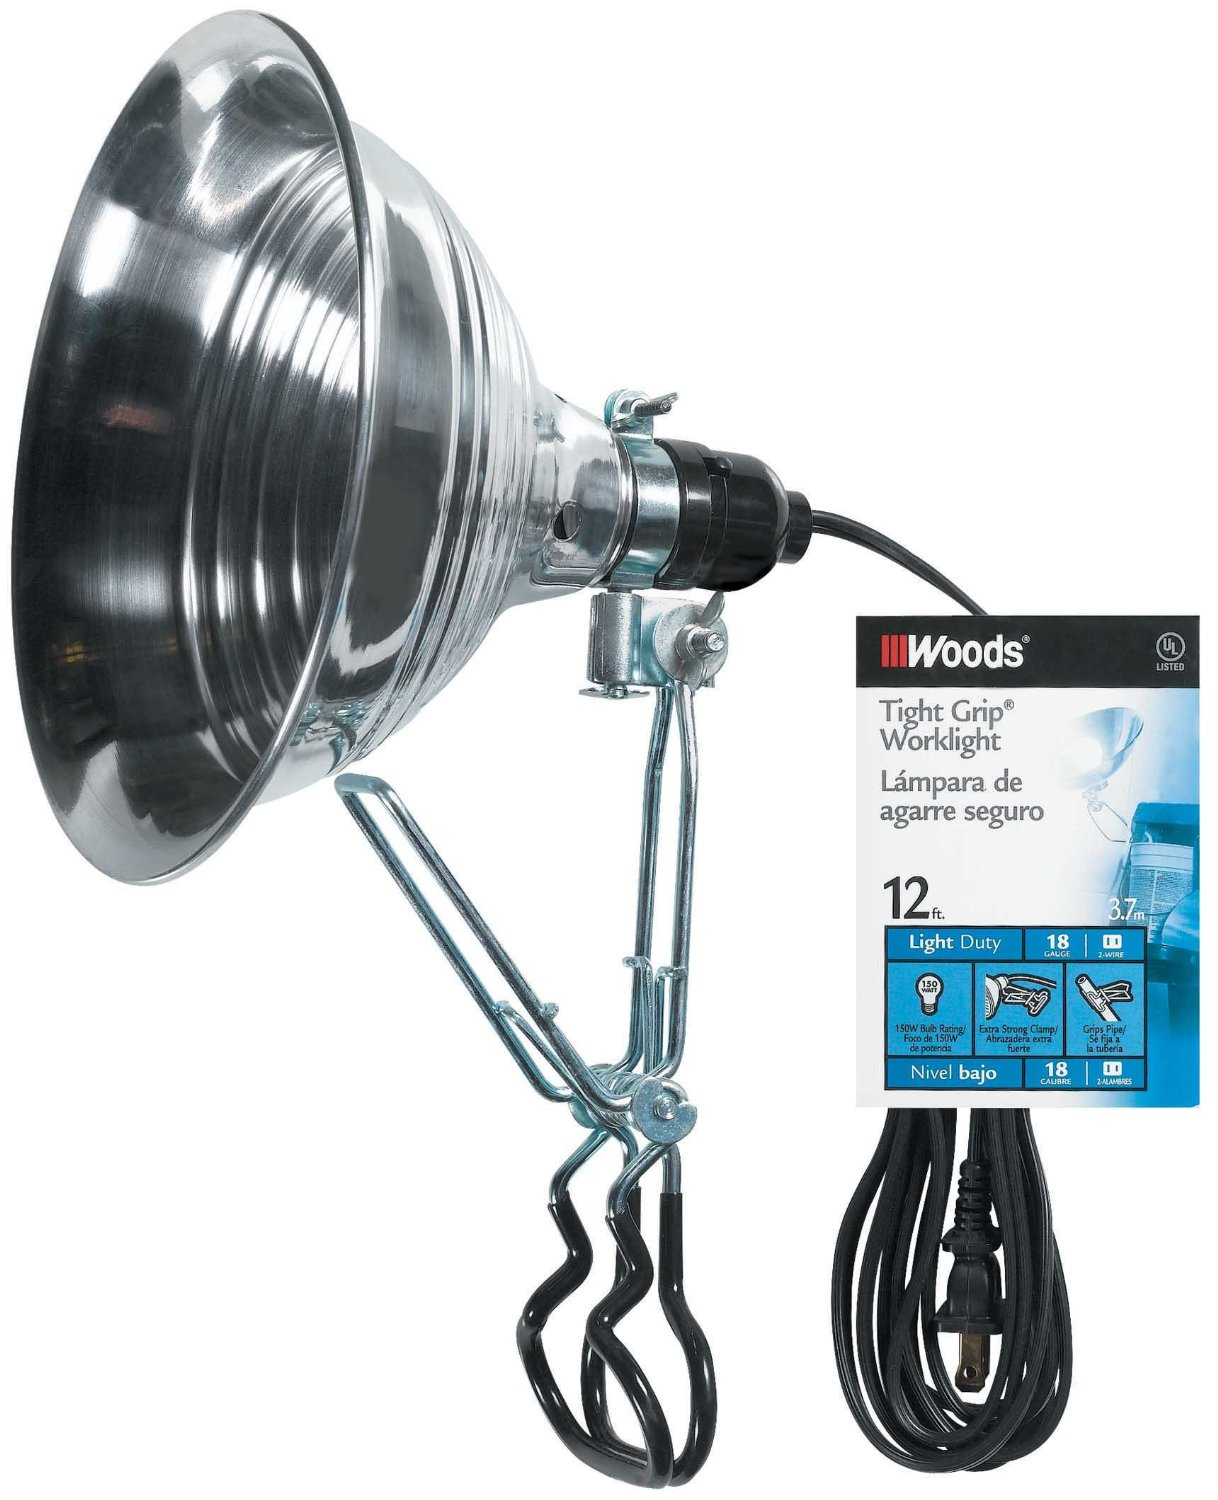 Woods 2839 18/2 Gauge SPT-2 Tight Grip 150-Watt Clamp Lamp with 8.5-Inch Reflector, 12-Foot